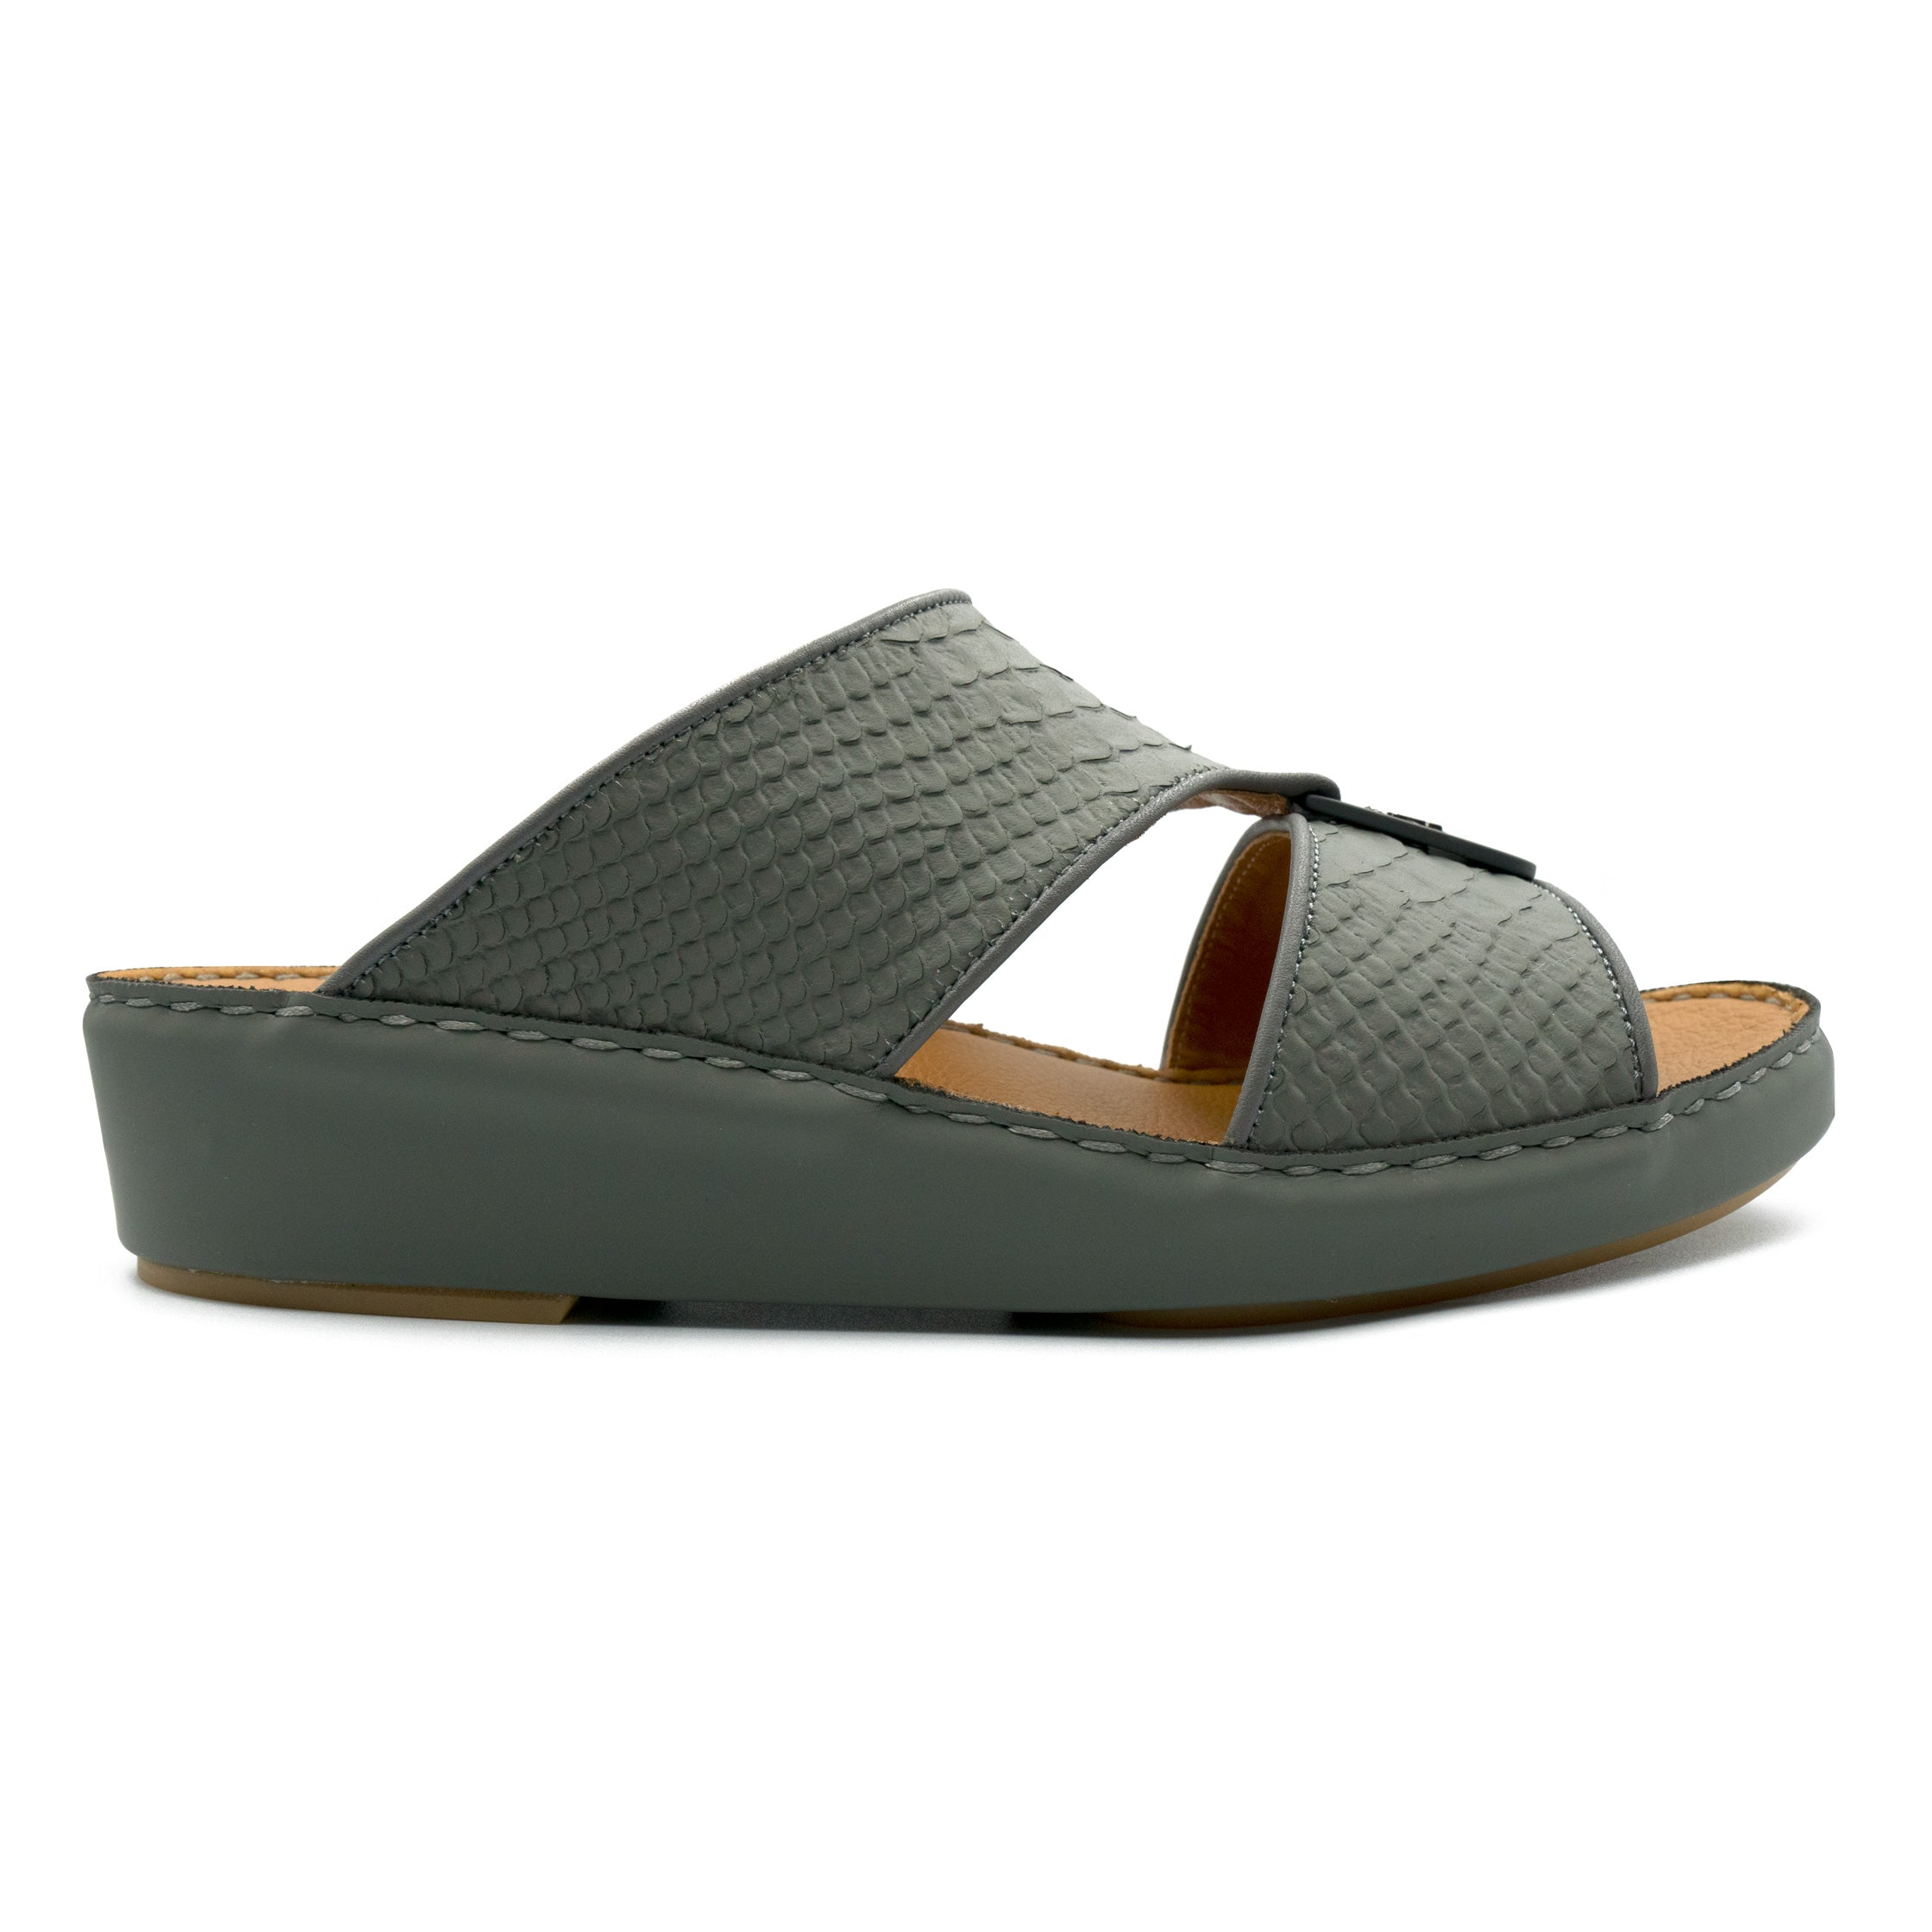 Dark Grey F Pitone (317-88) Arabic Sandals by F